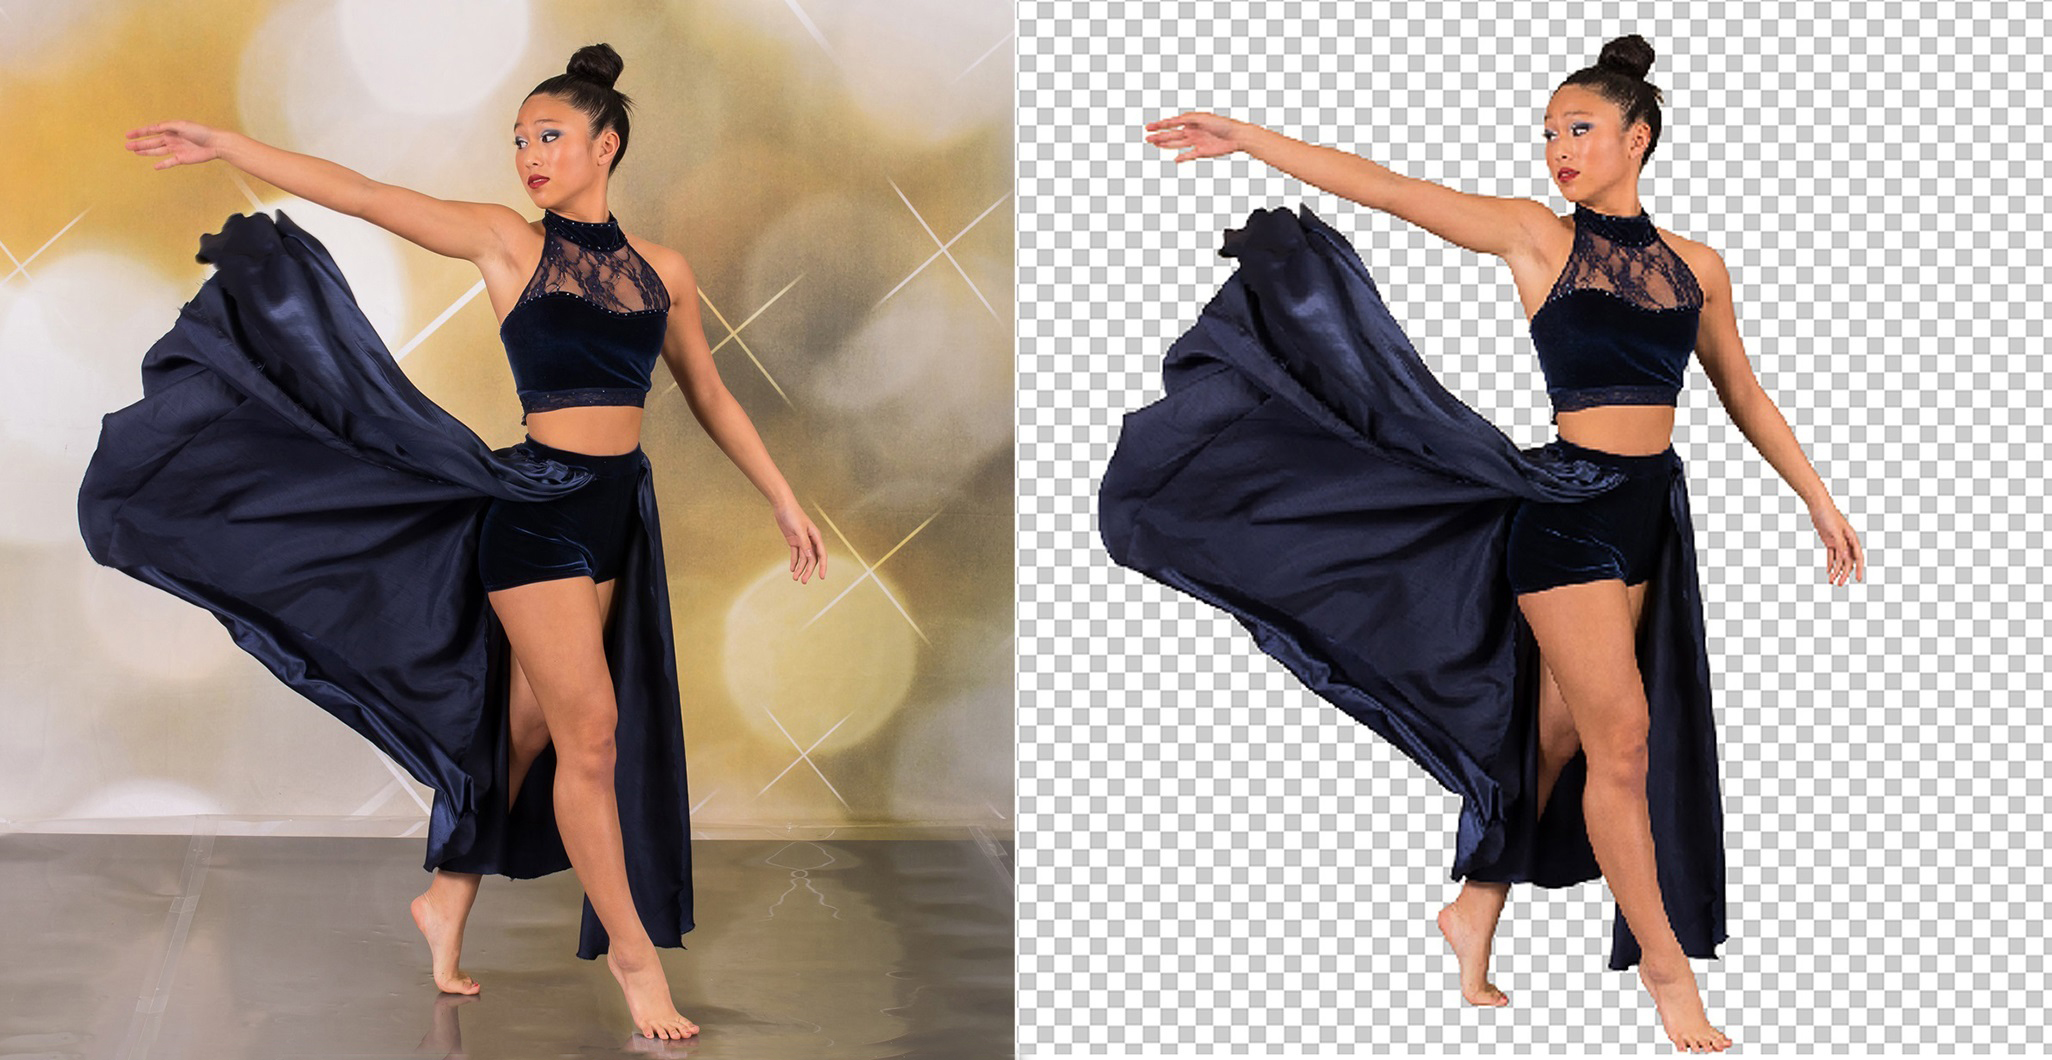 Photoshop, Photo Editing, Image Editing, Photo Retouching, Clipping Path, Photo Cut out, Background Removal, Edit Background, Photo Manipulation, Image Enhancement